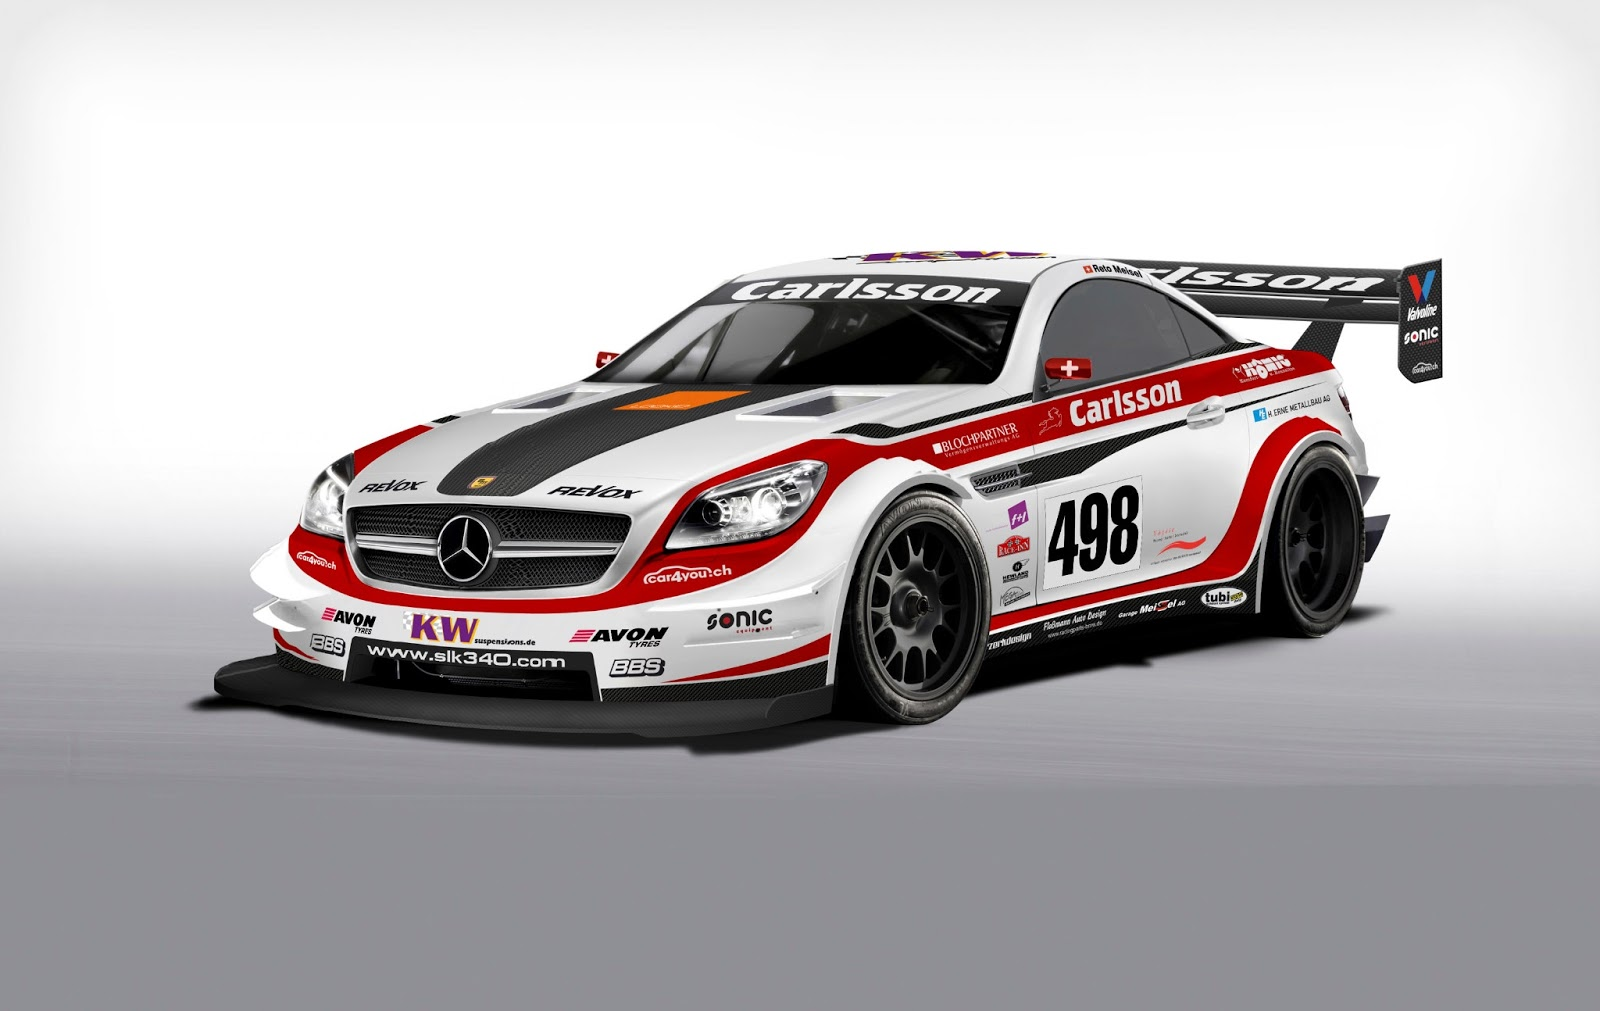 Cars gto carlsson mercedes benz slk race car for Mercedes benz motorsport